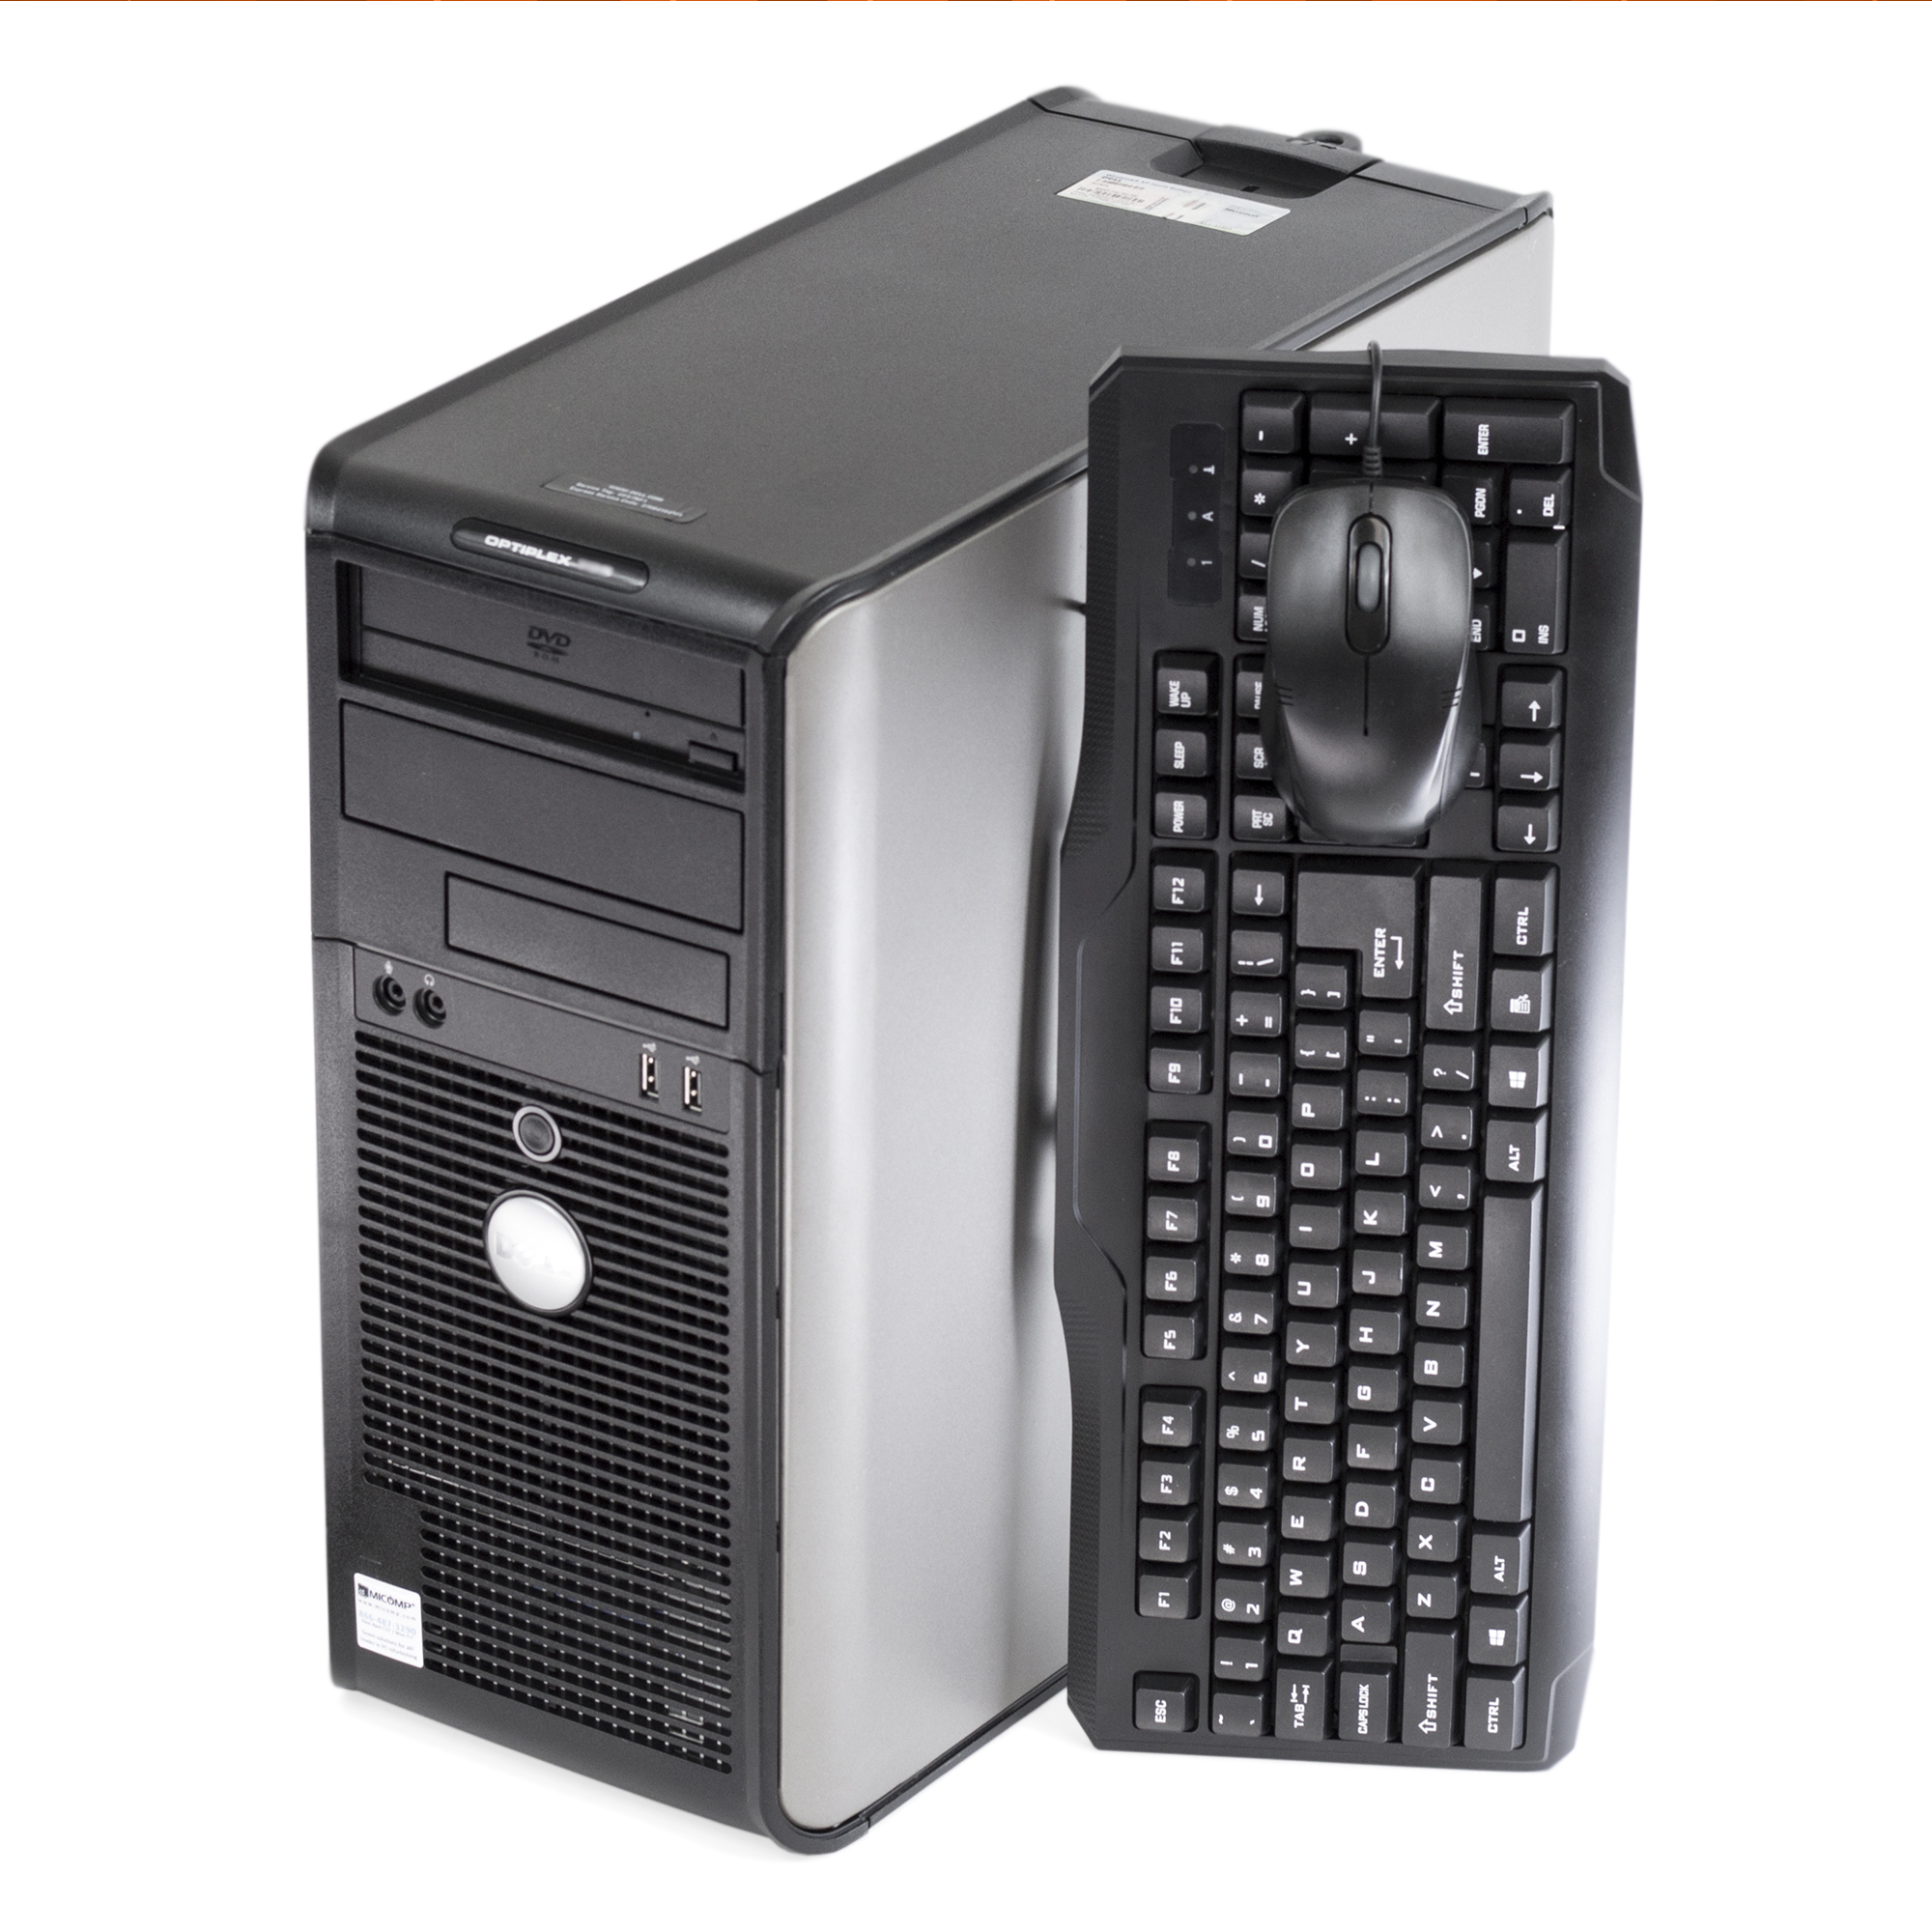 Dell Optiplex 780 Tower Core 2 Duo Dual Core 3.0Ghz 8Gb 500Gb Dvd Windows 10 Pro 64 Bit